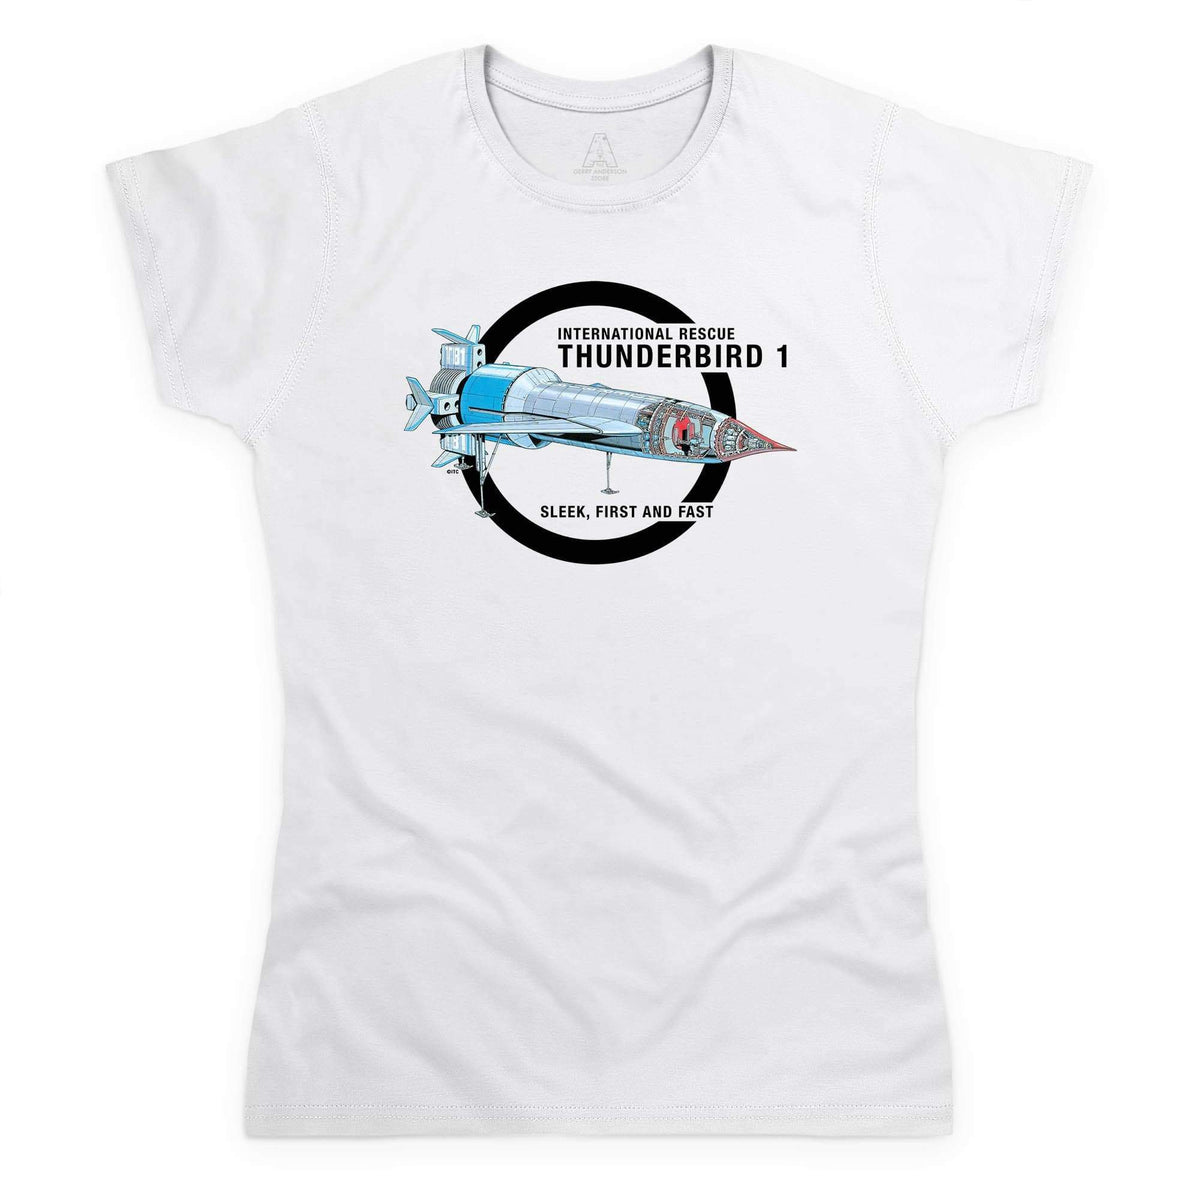 Thunderbirds: Thunderbird 1 Cutaway Women's White T-Shirt [Official & Exclusive] - The Gerry Anderson Store